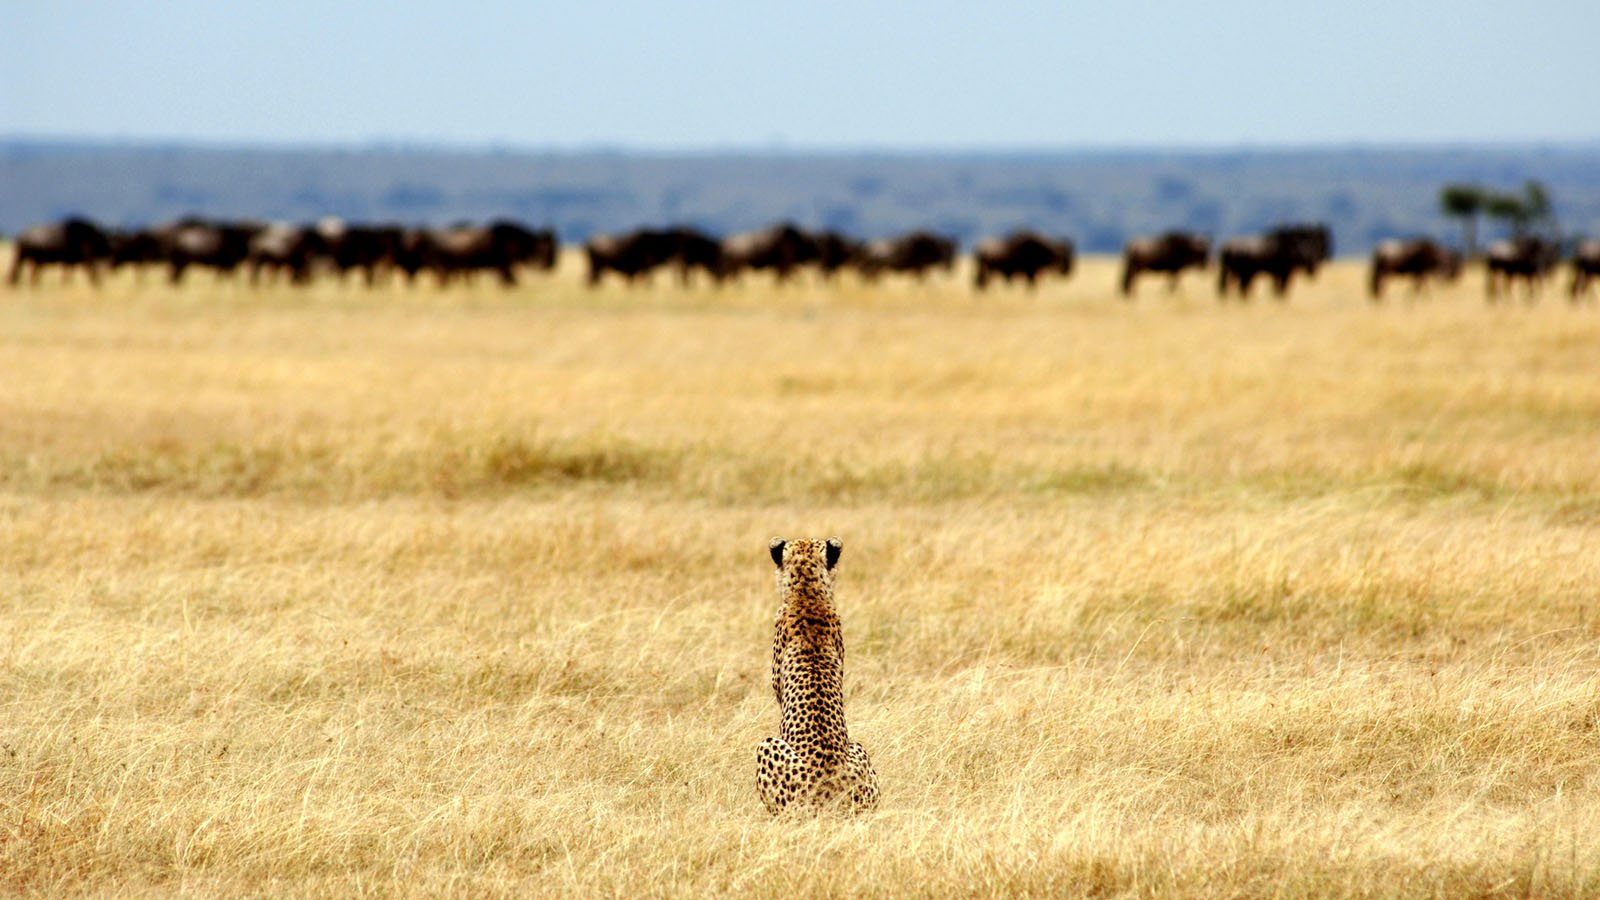 What Experiences Can You Expect on Your First Safari?